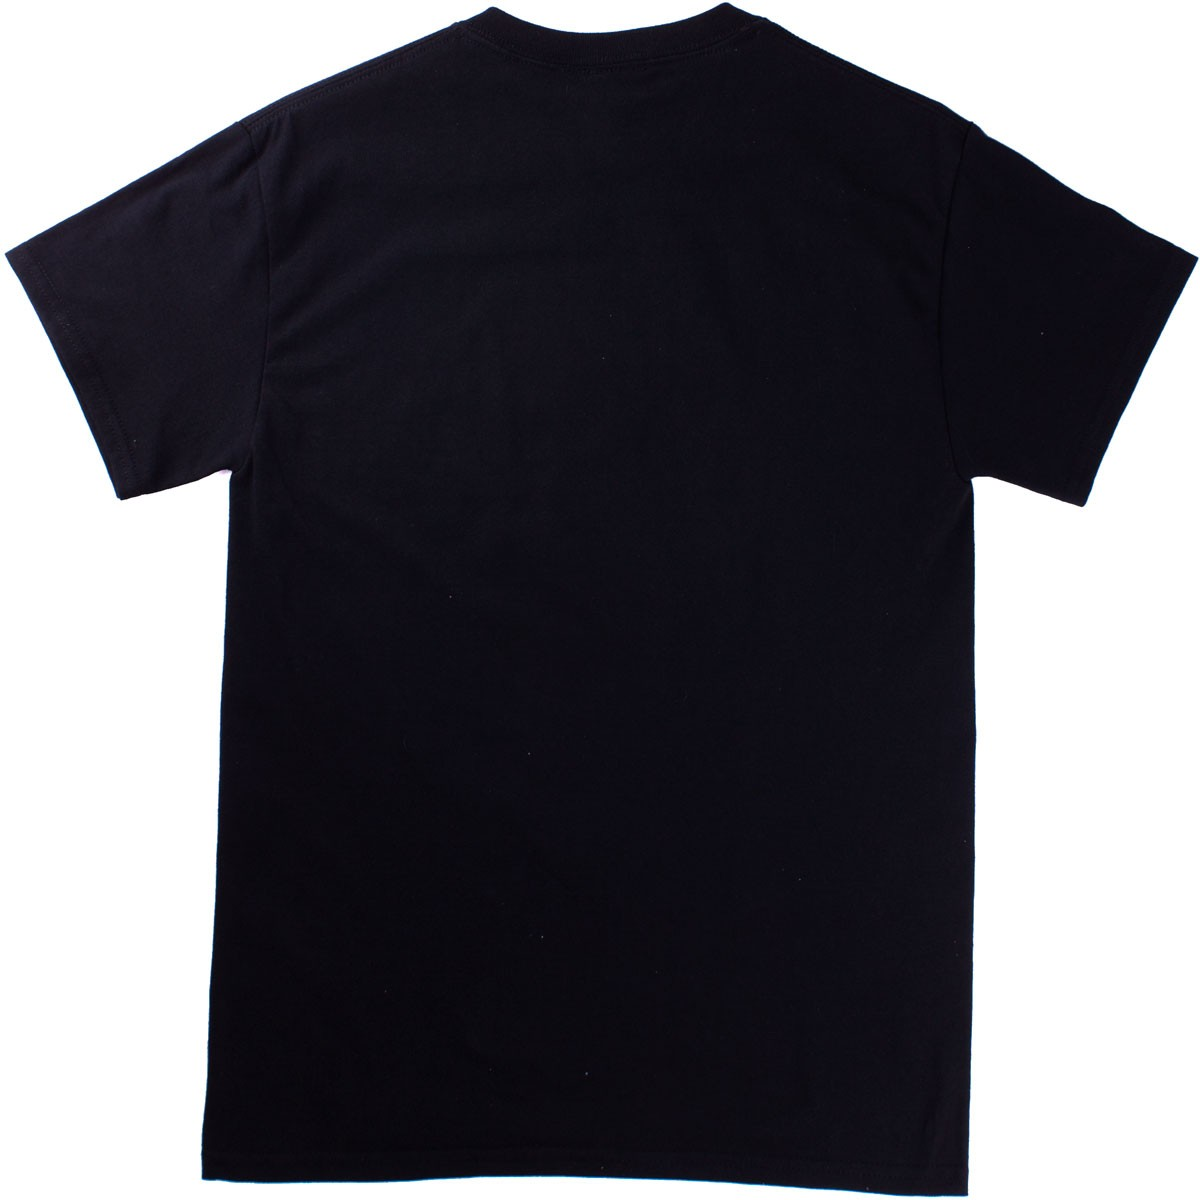 Skate Goat T-Shirt - Black